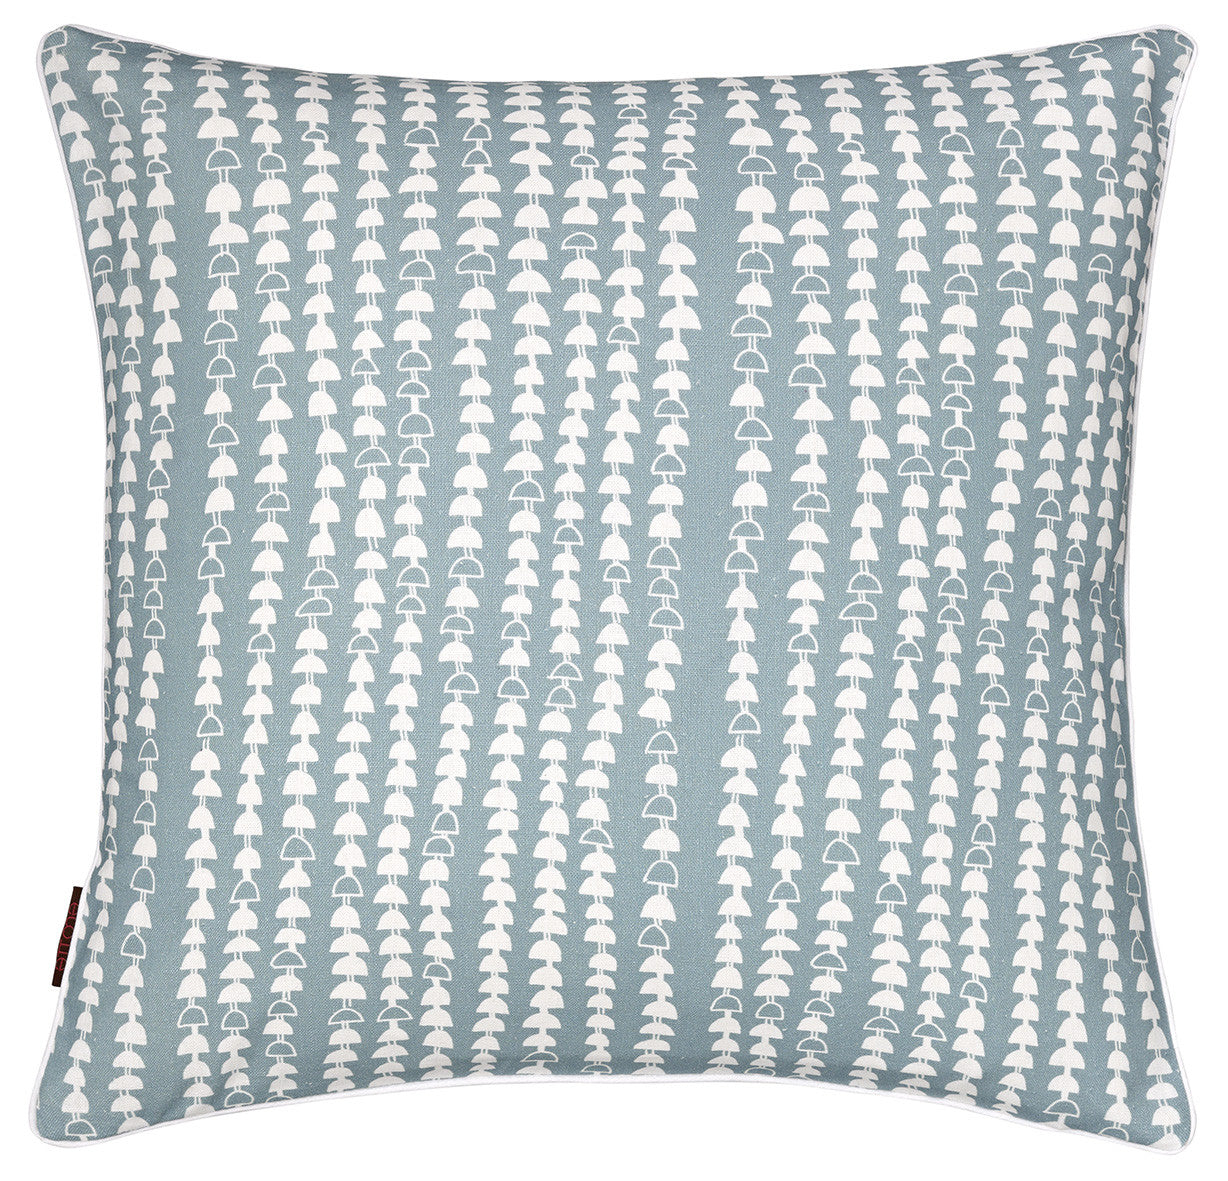 Hopi Graphic Pattern Linen Union Cushion in Light Chambray Blue